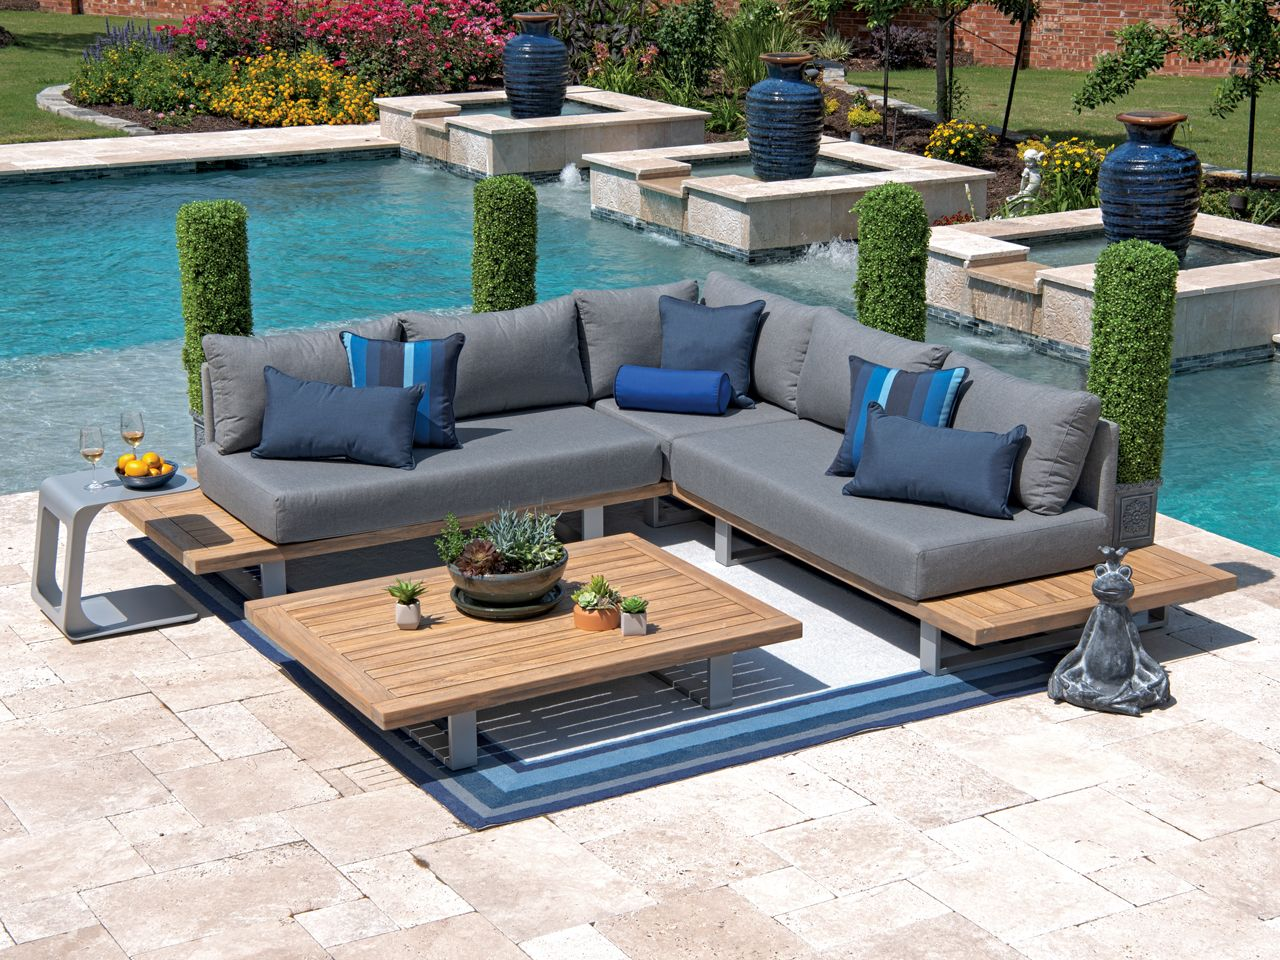 Chair King Backyard Store Backyard Seating Patio Design Cozy Backyard